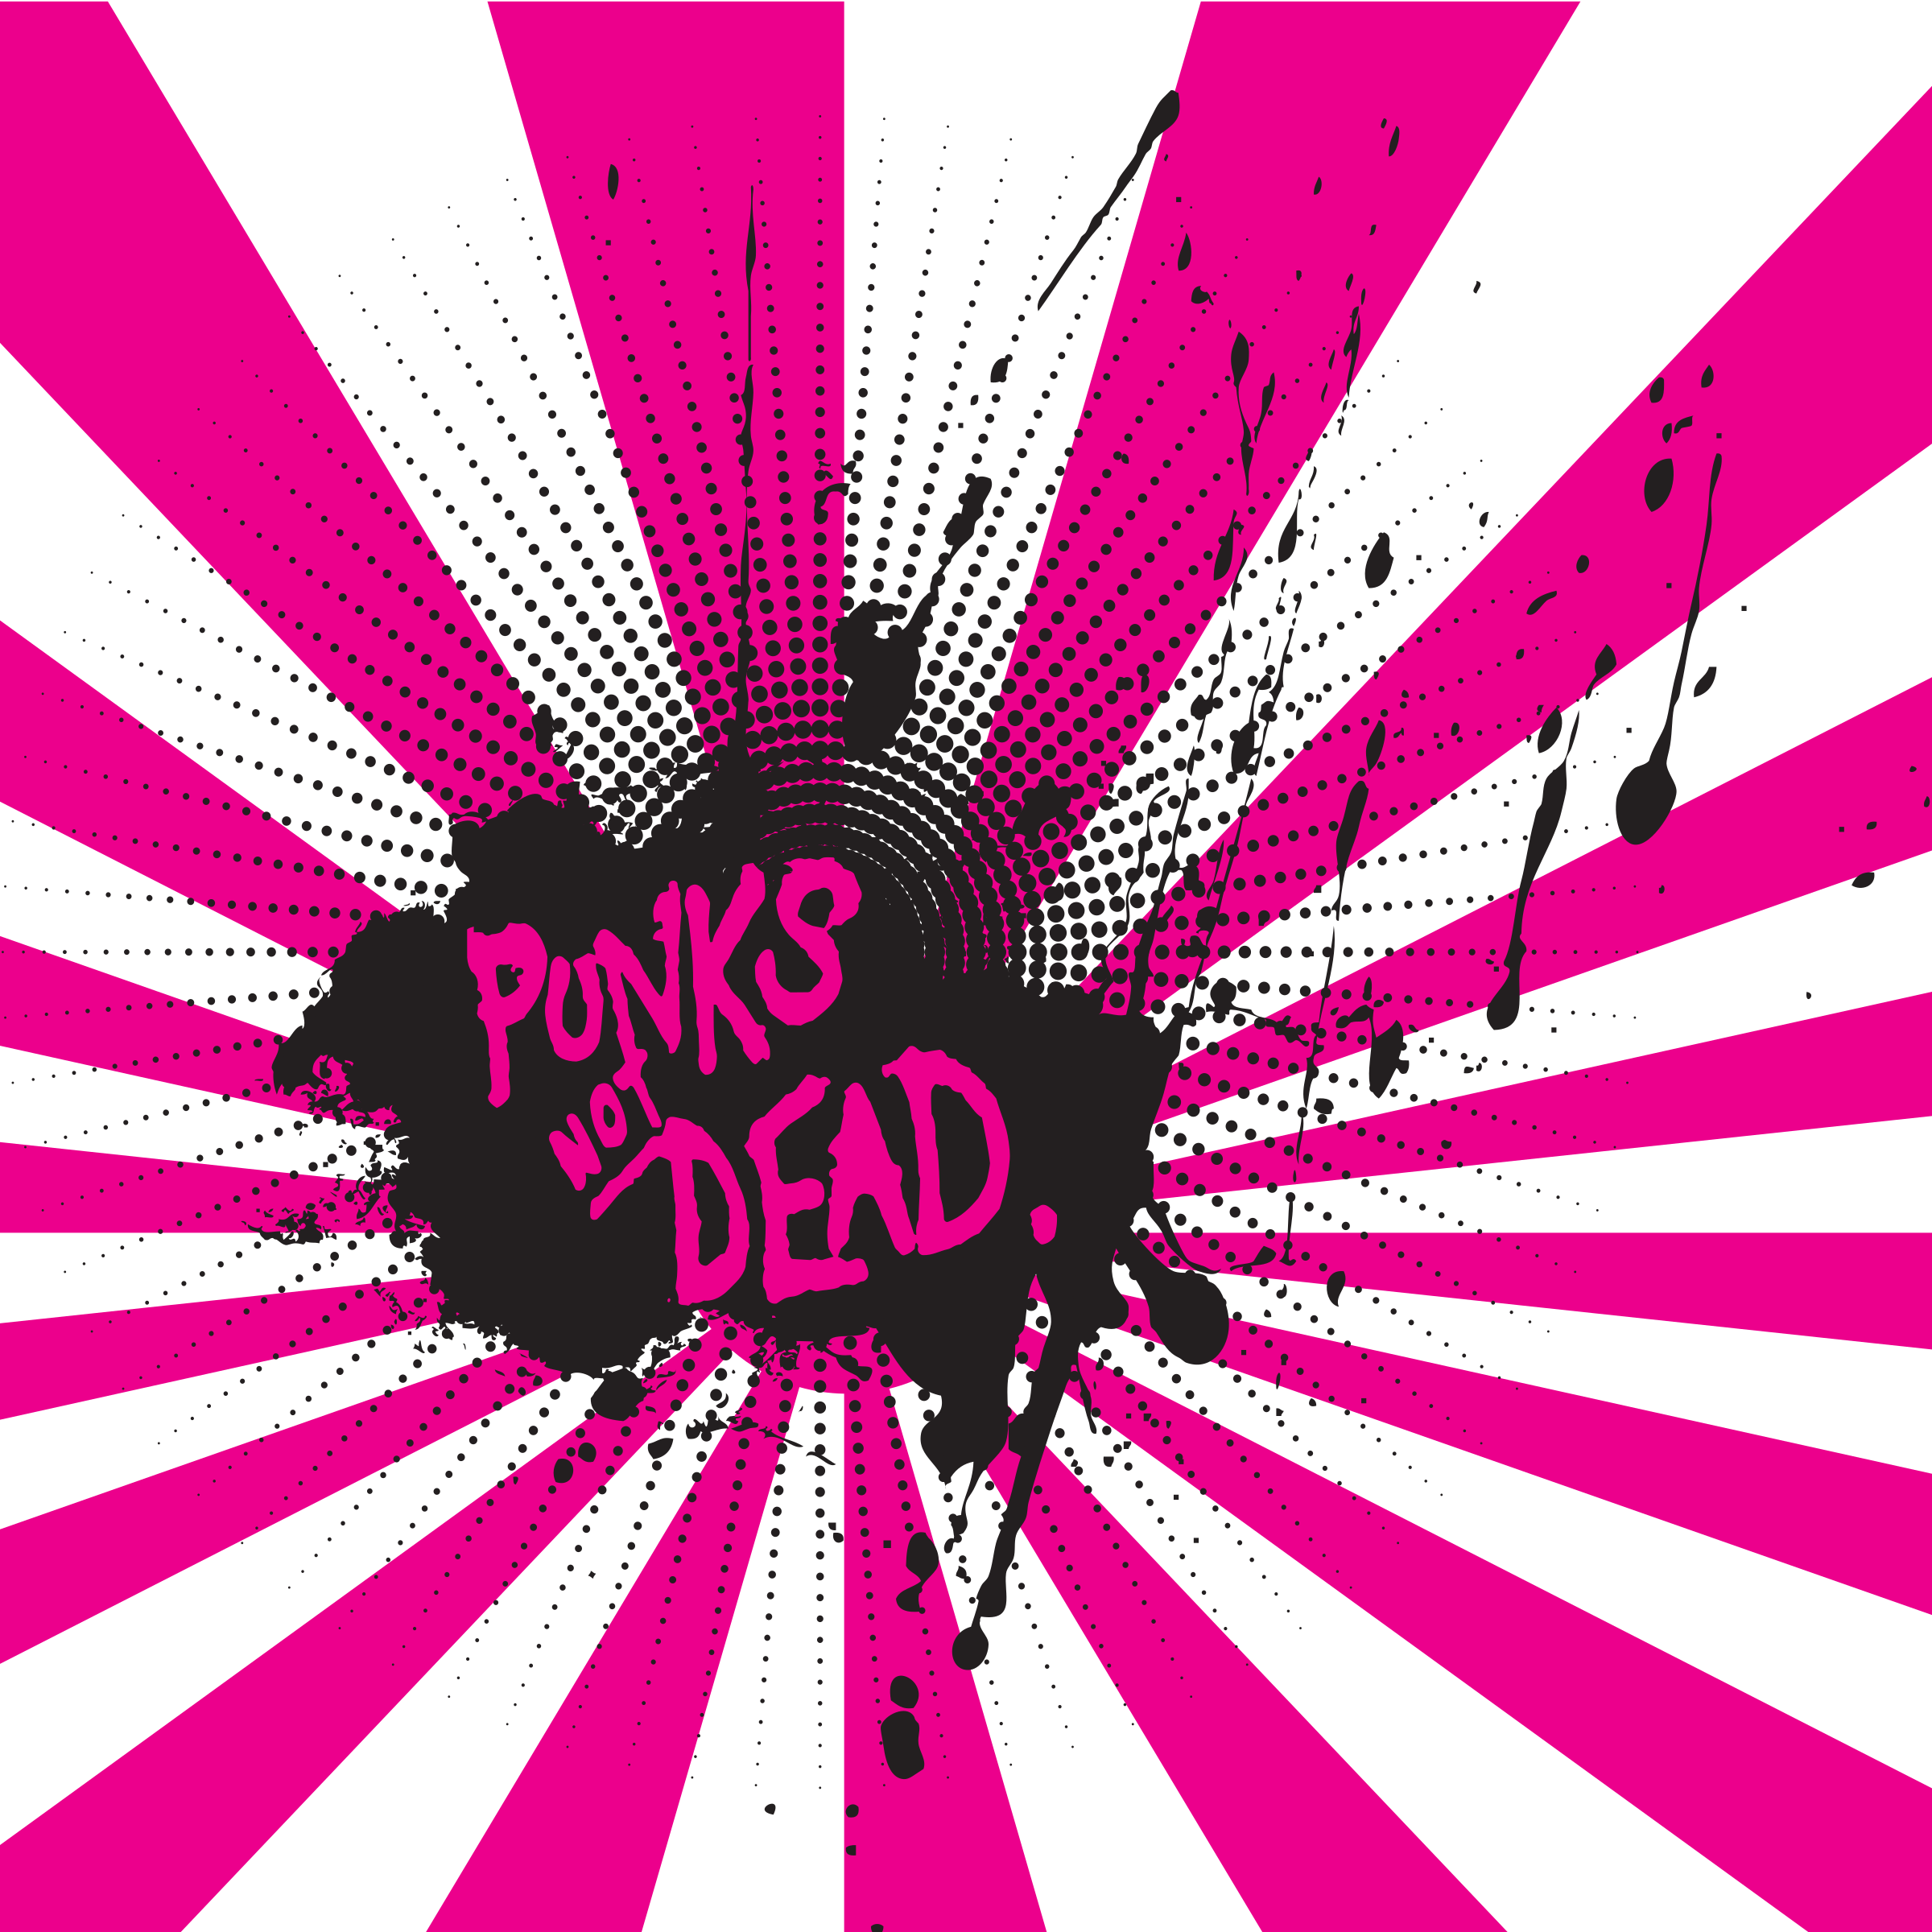 Punk's not dead by liftarn